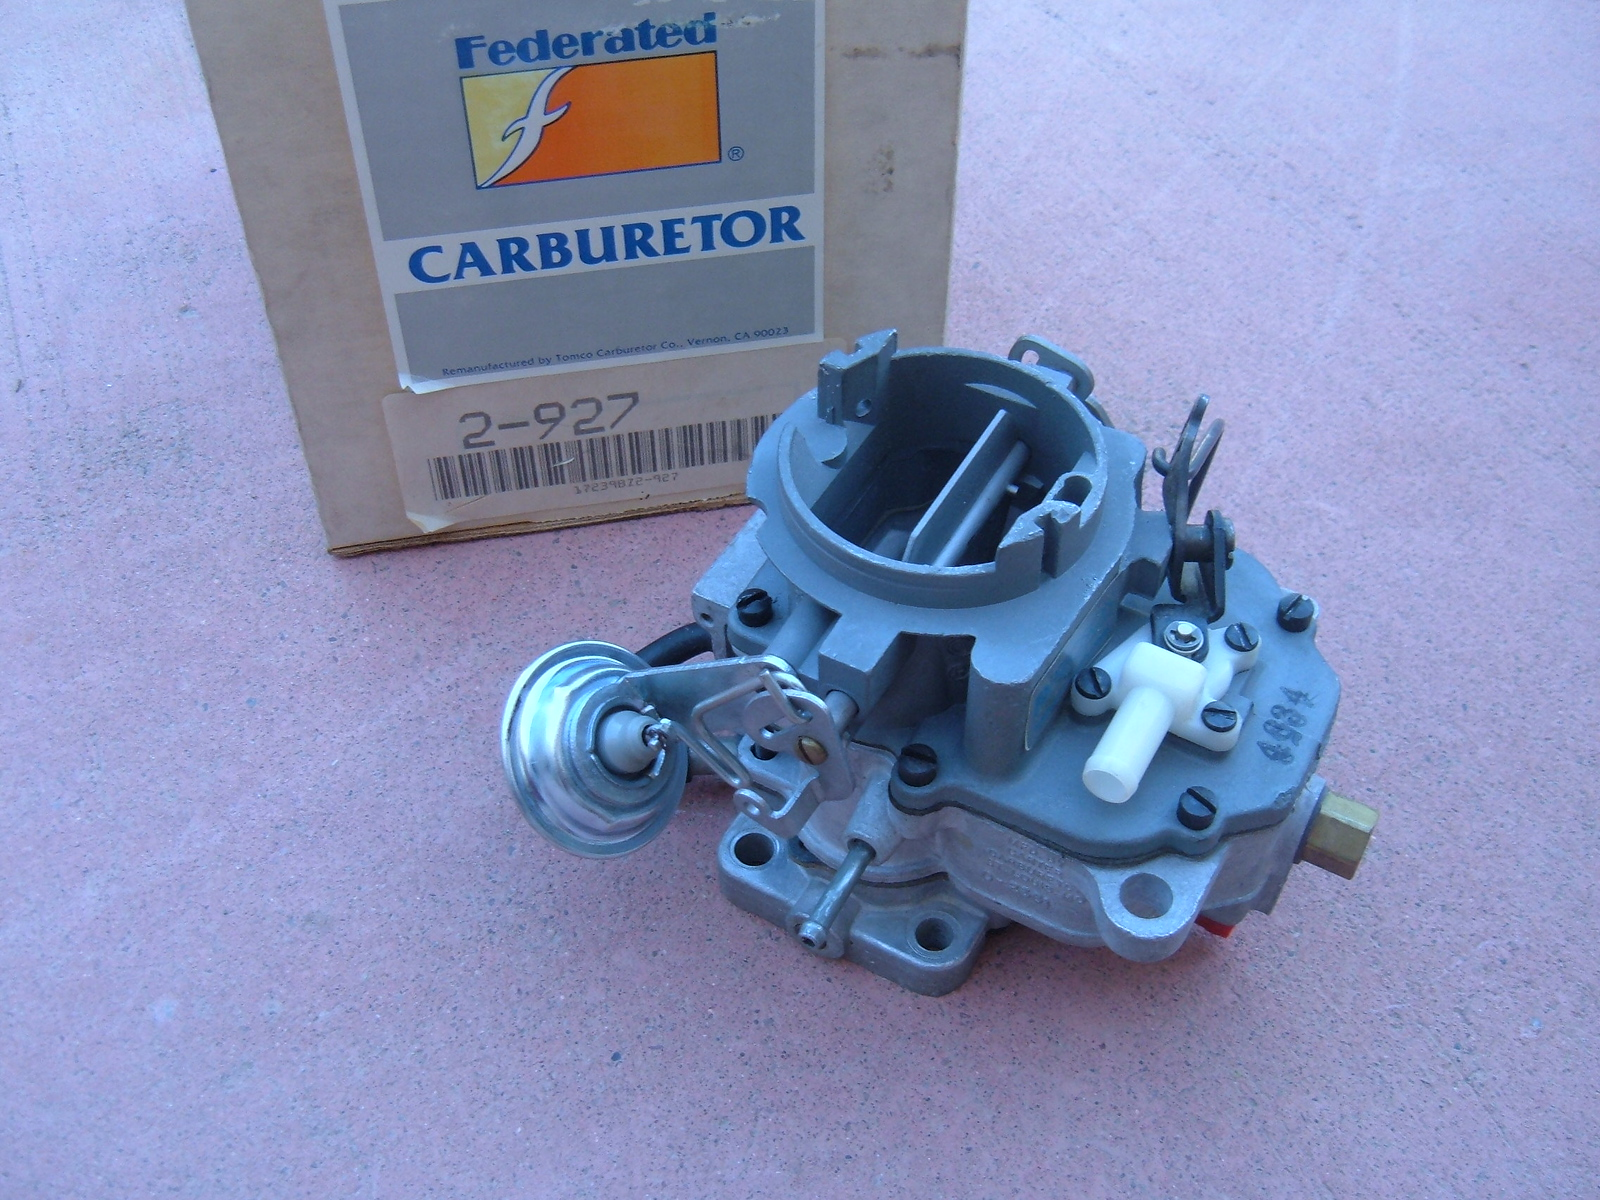 1973 dodge plymouth chrysler carter carburetor 2 bar rebuilt dart valiant (zh 2-927)